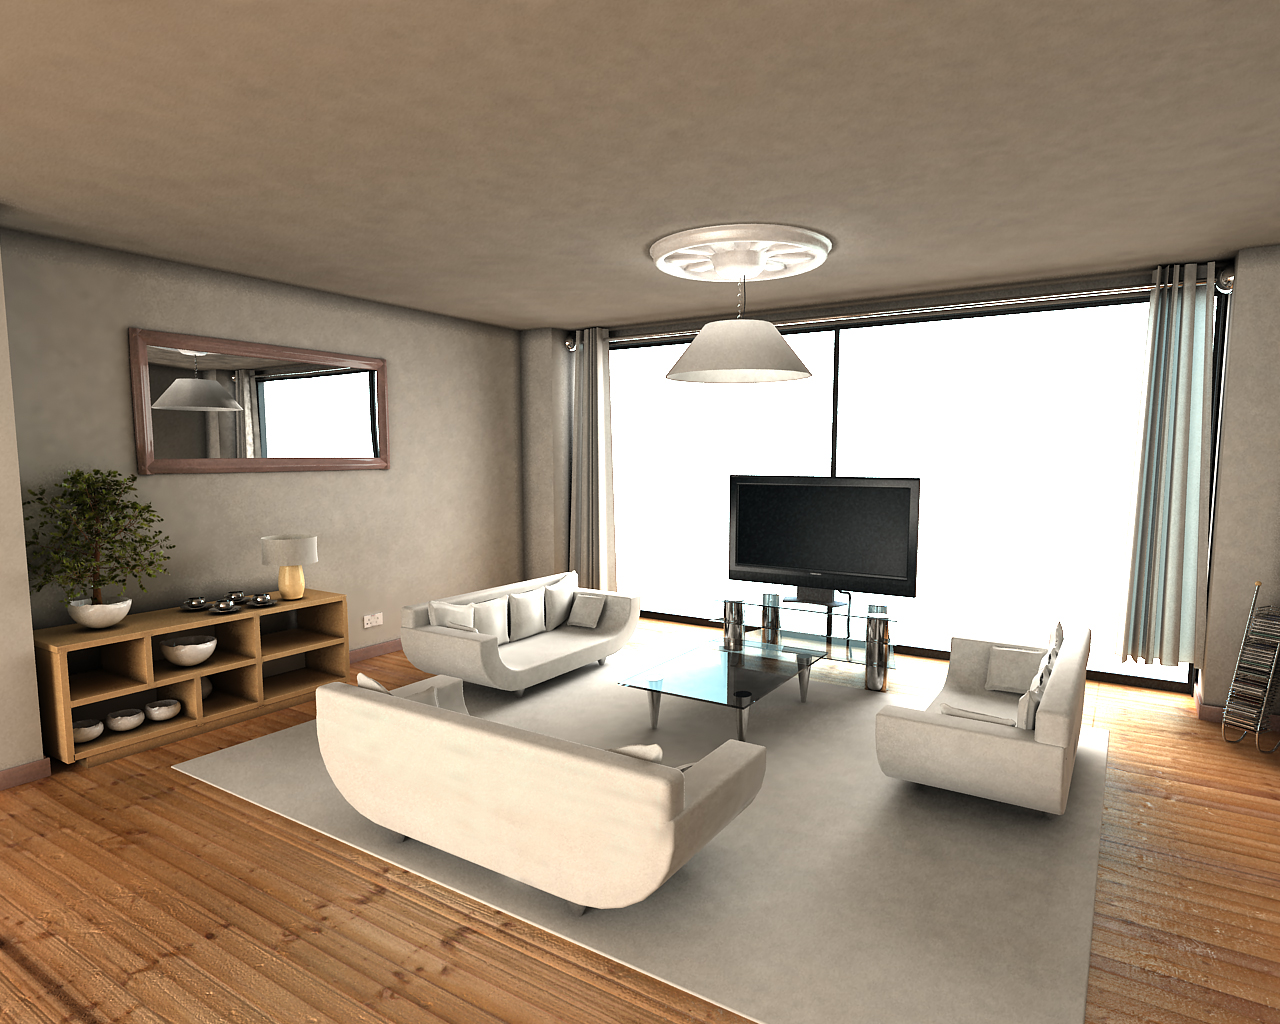 apartments-design